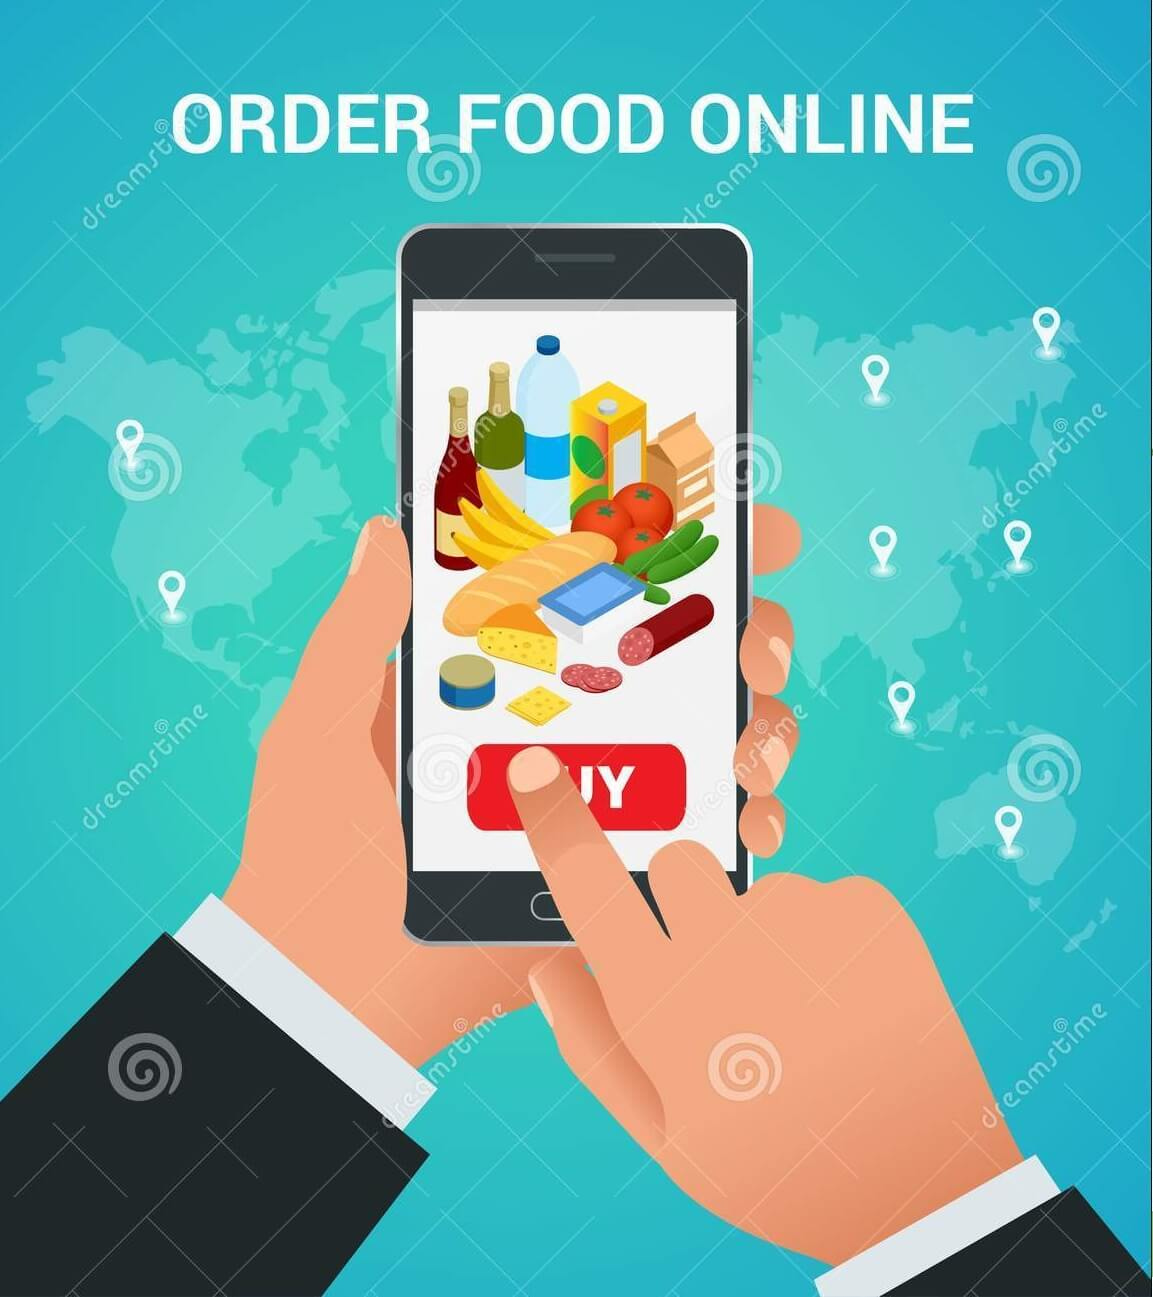 Online Food Ordering System Case Study